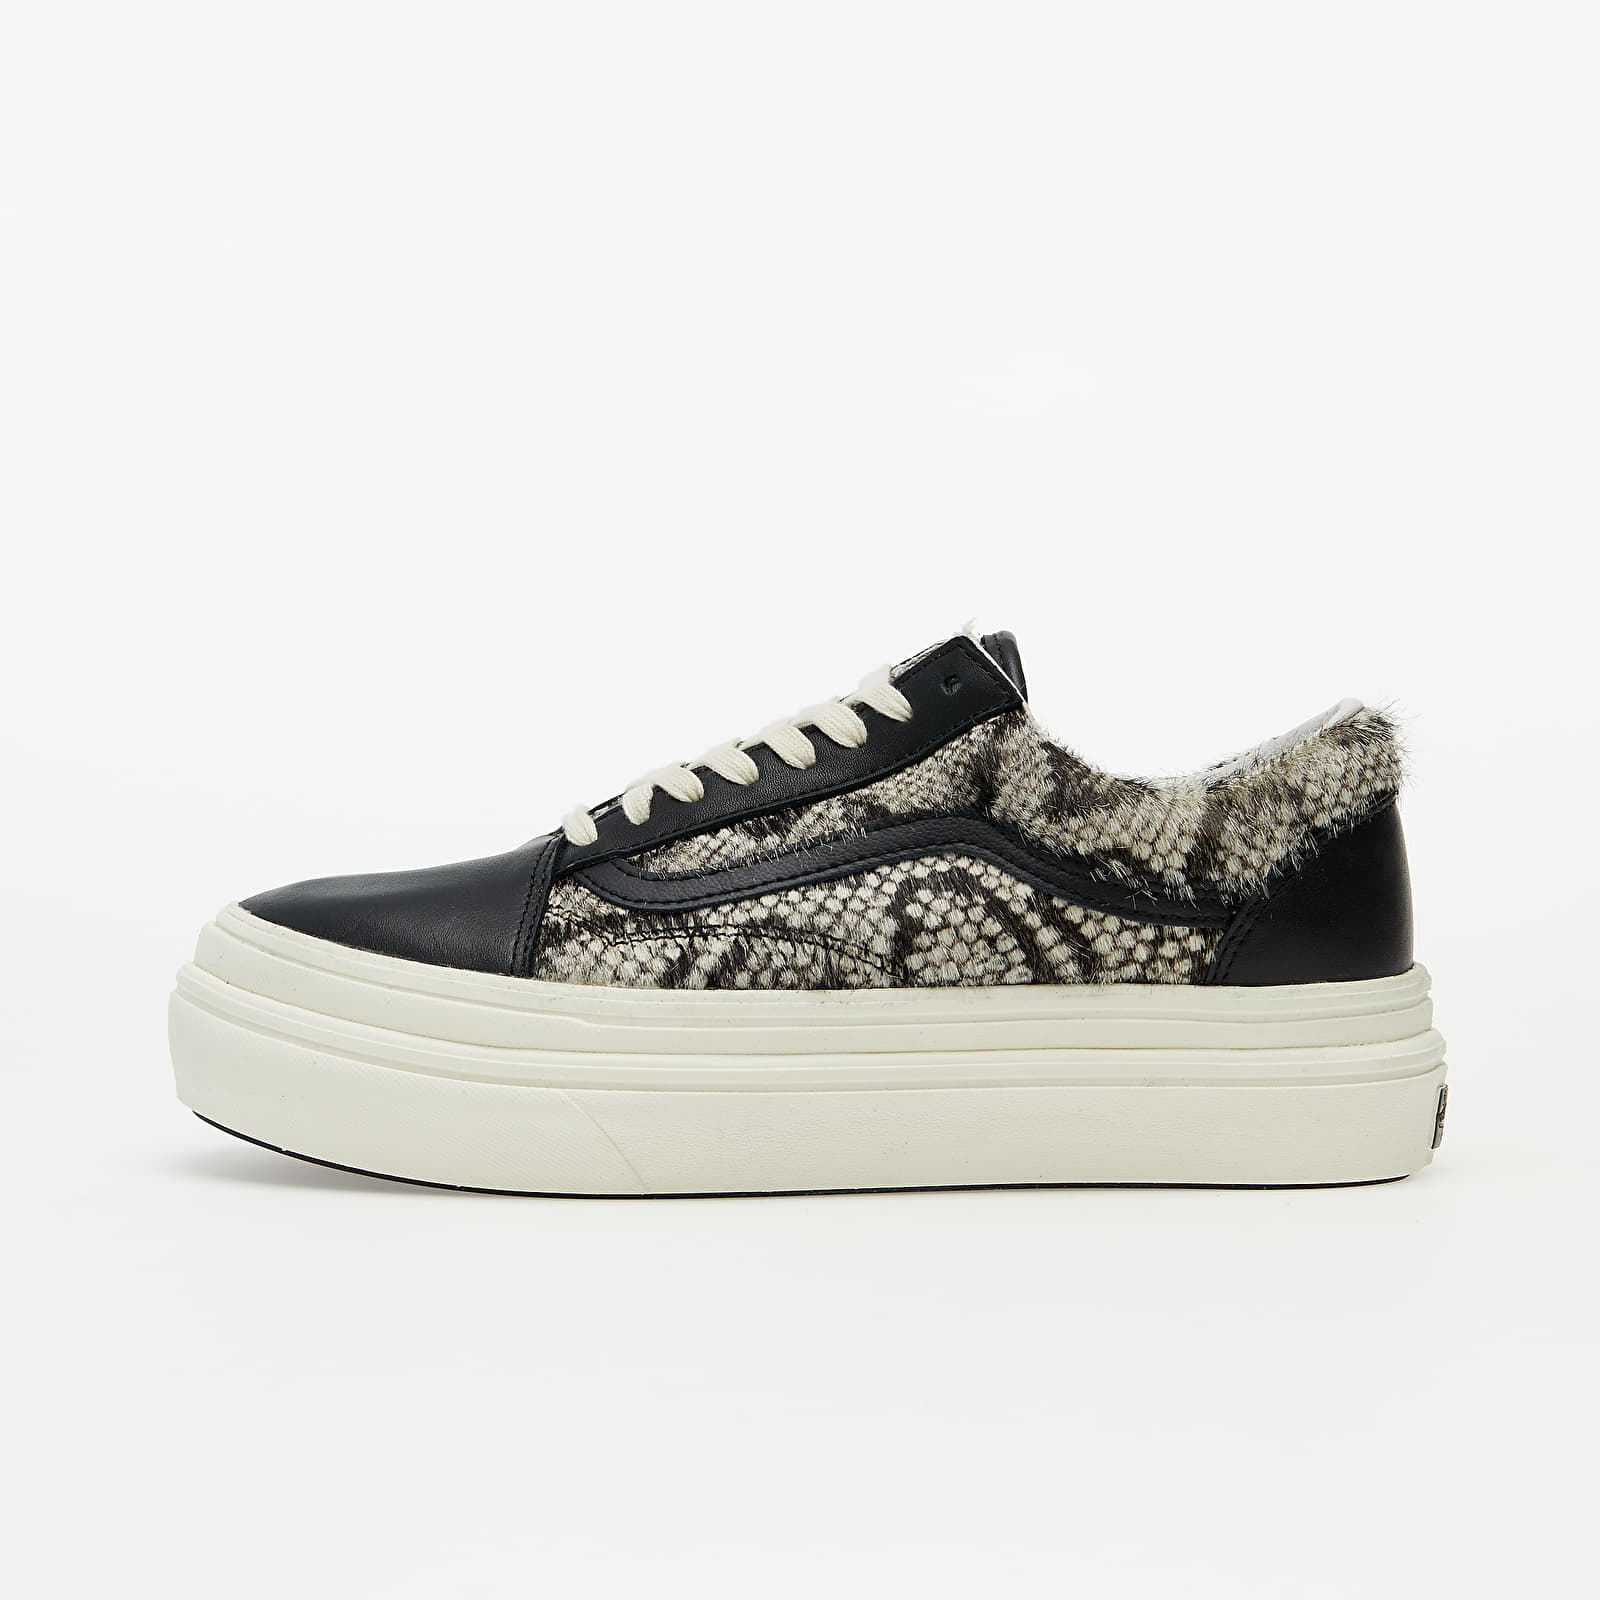 Vans Super ComfyCush Old Skool (Snake/ Pony) Black/ Marshmallow EUR 34.5